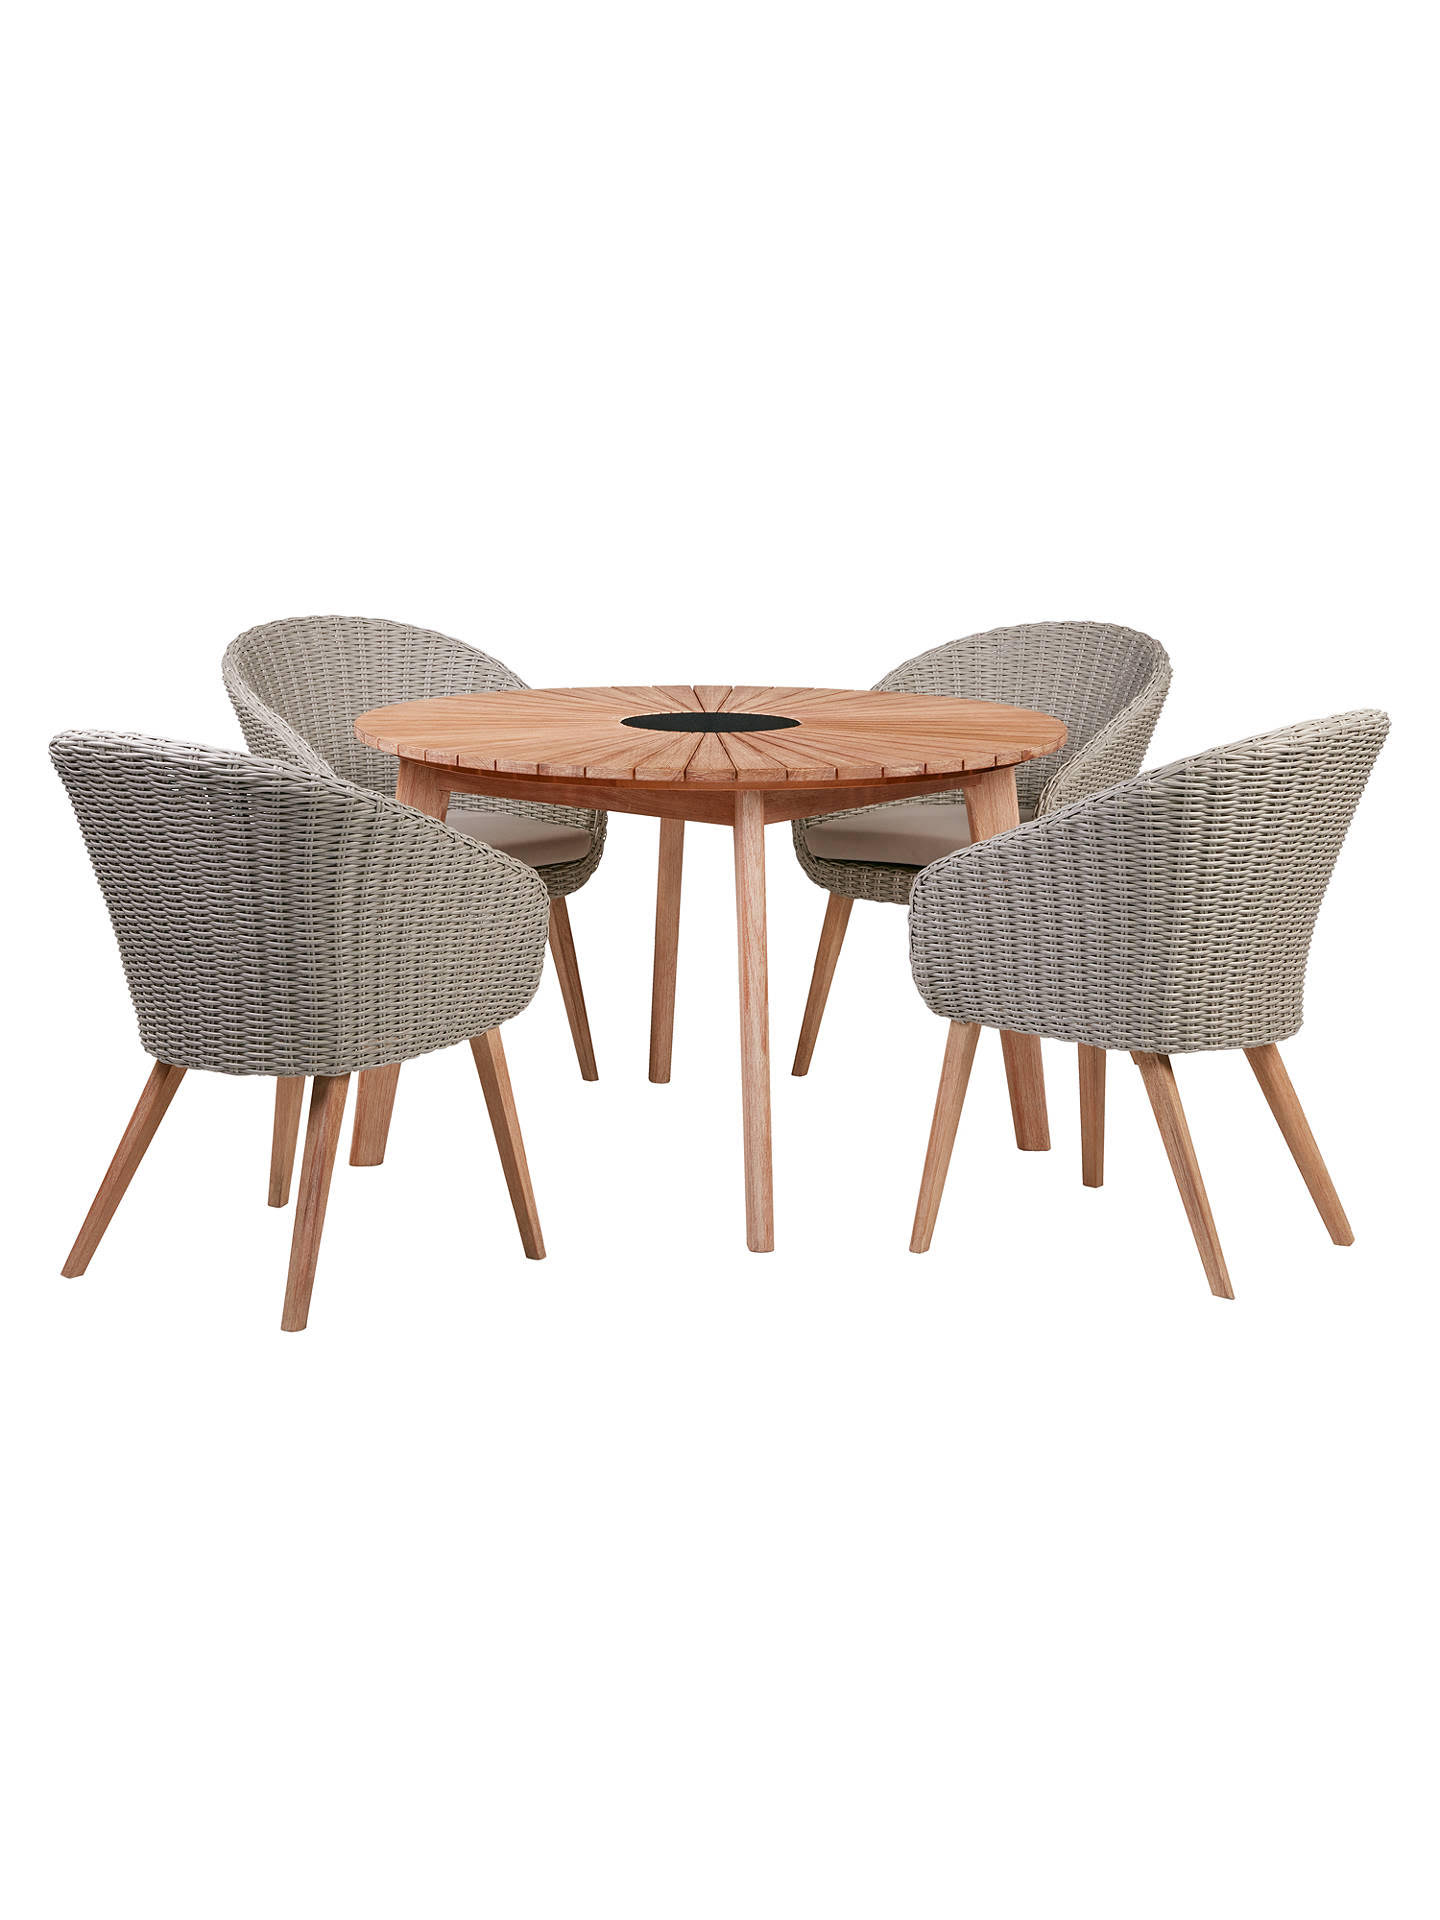 Lot 30572 - V Brand New To John Lewis Sol Four Seater Round Garden Table & Chairs ISP £999 (John Lewis) Stock